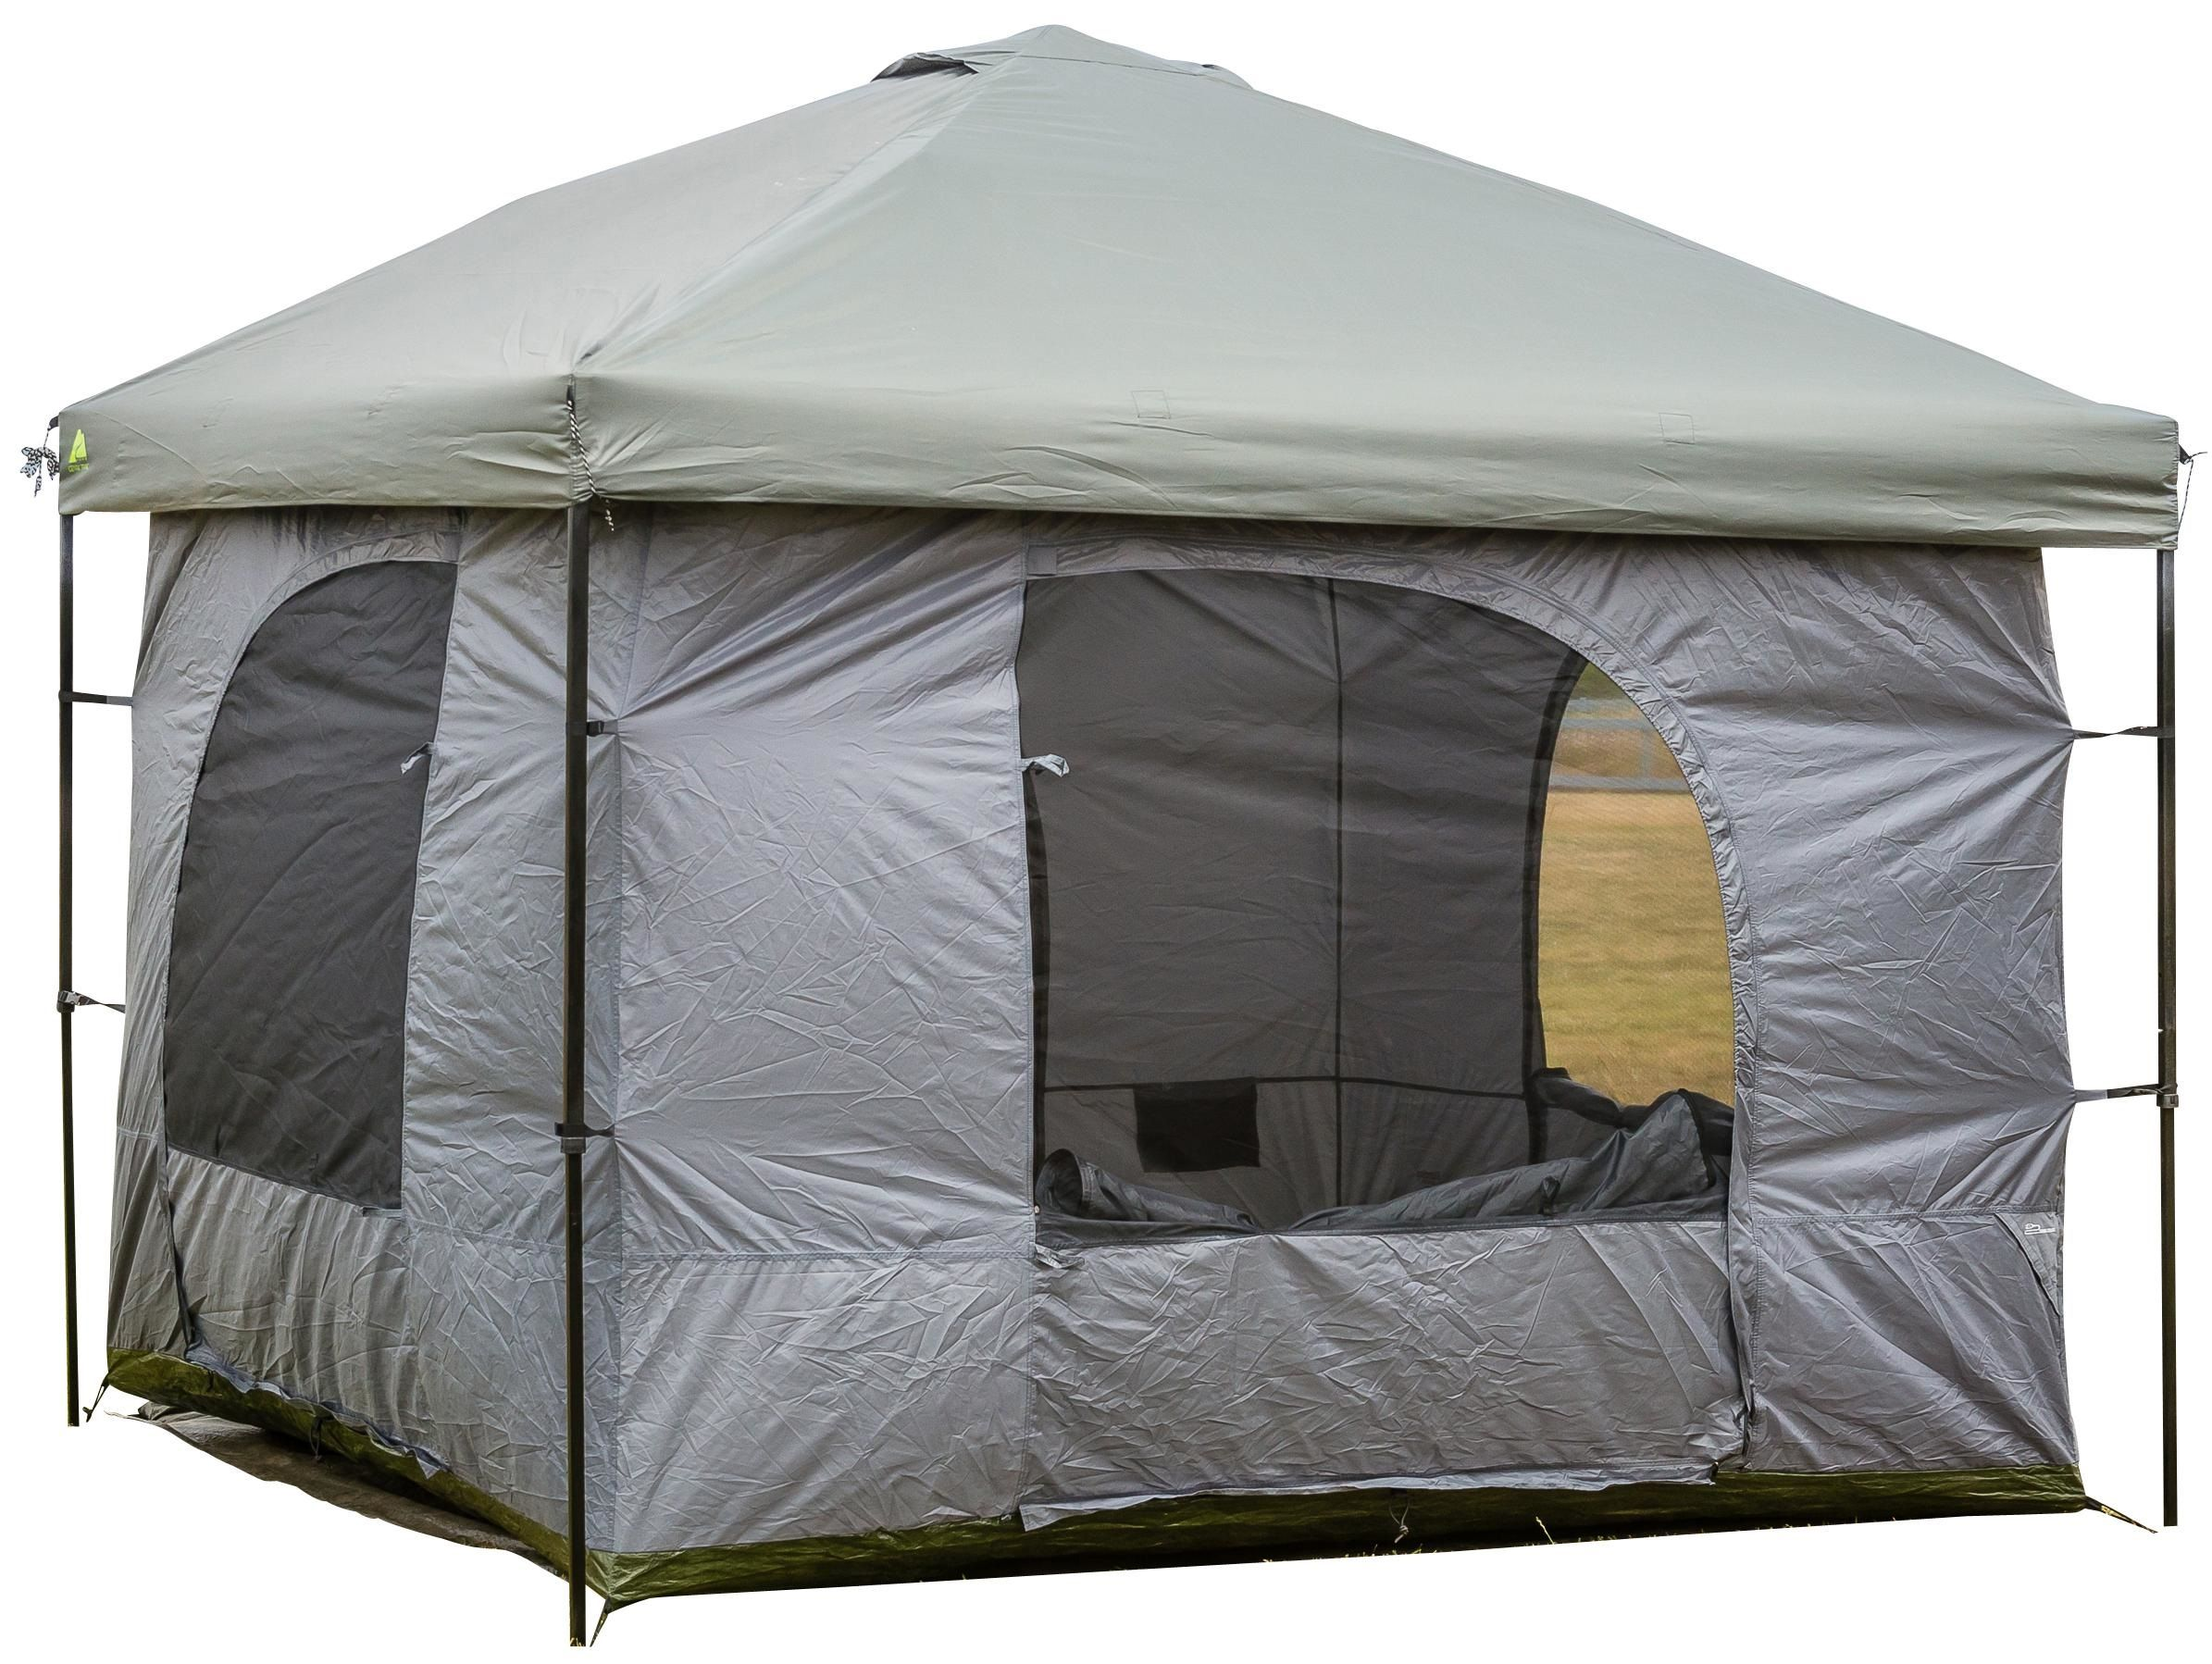 Standing Room 100 Family Cabin C&ing Tent With feet of Head Room 2 Big Screen Doors Big Screen Doors with Grey XL) All Season Weather Proof Fabric Fast  sc 1 st  Pinterest & Affordable Camping / Glamping tent with almost 9 feet of head room ...